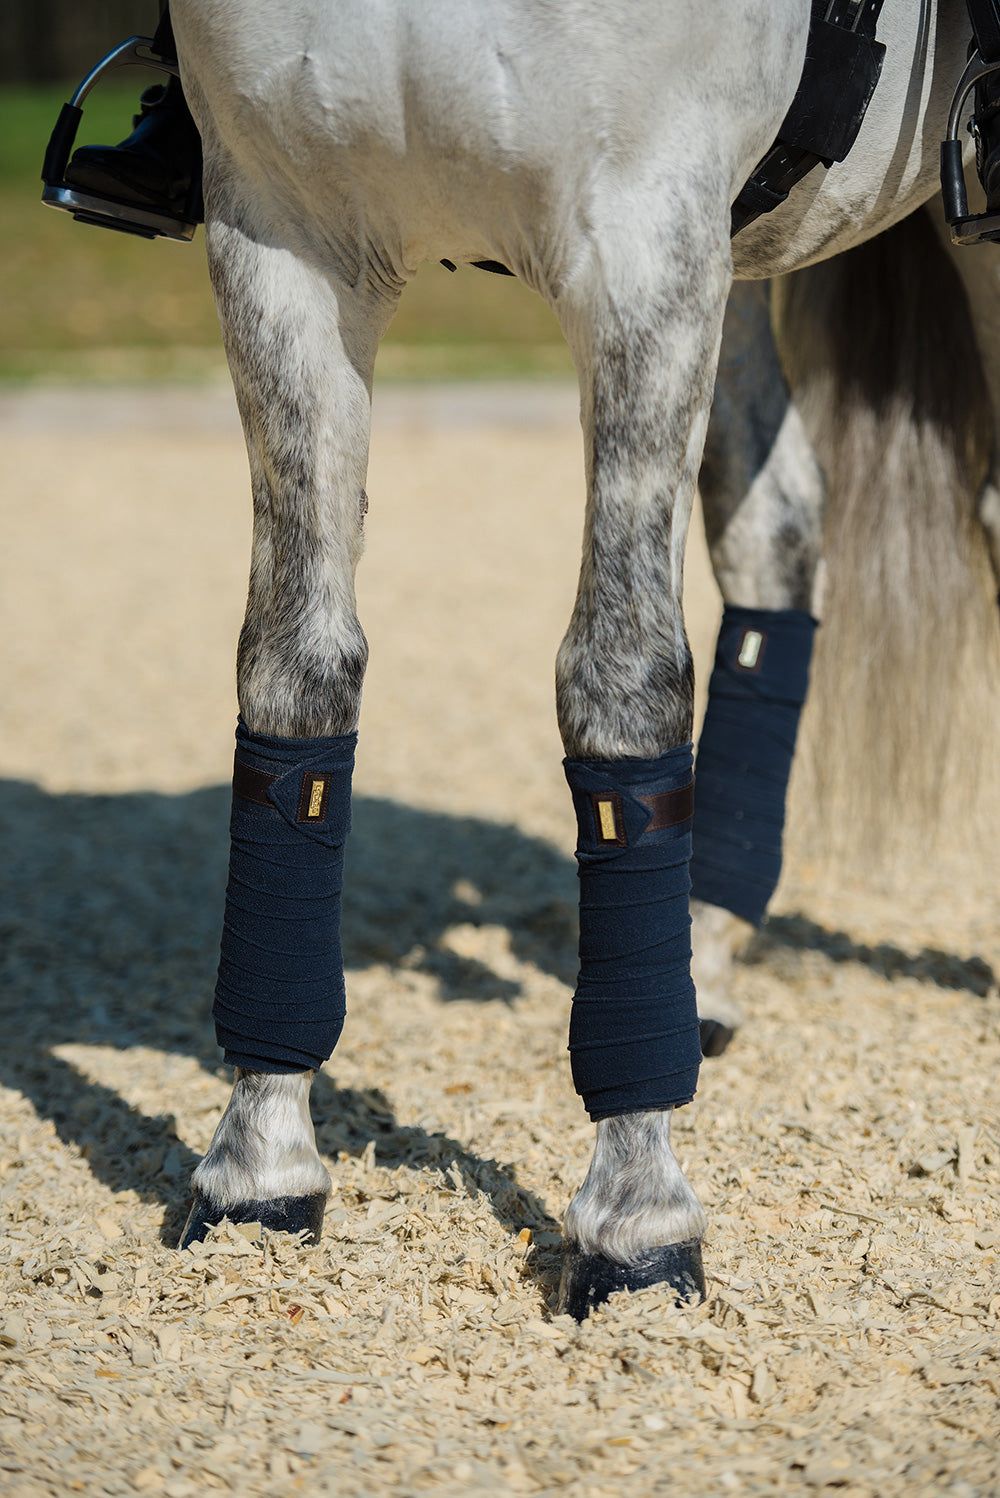 Equestrian Stockholm Polo Wraps - Royal Classic - The Dressage Store